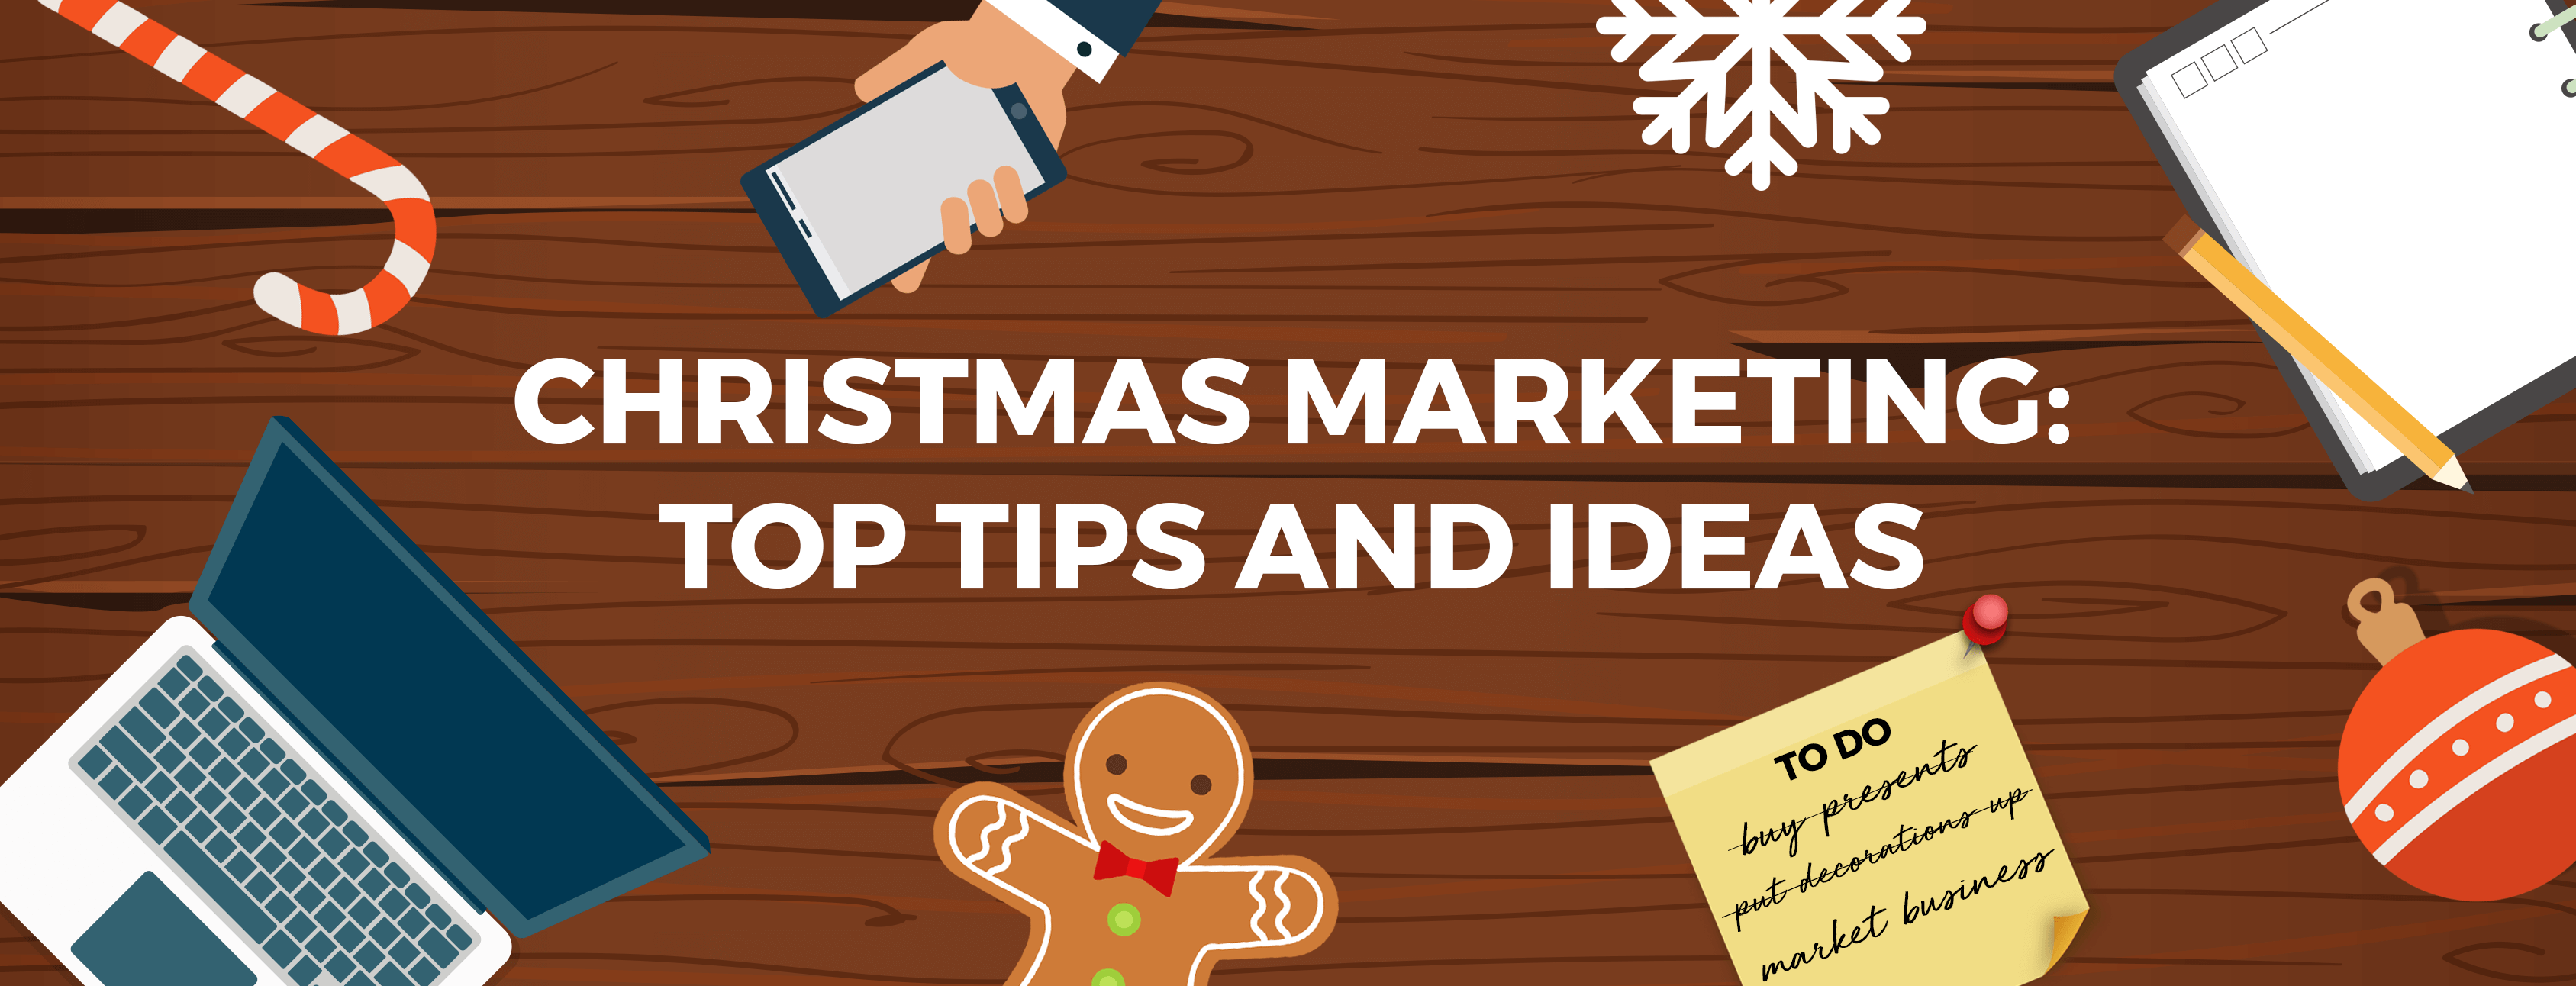 Marketing-Ideas-For-Businesses-On-Christmas-Part-1-2